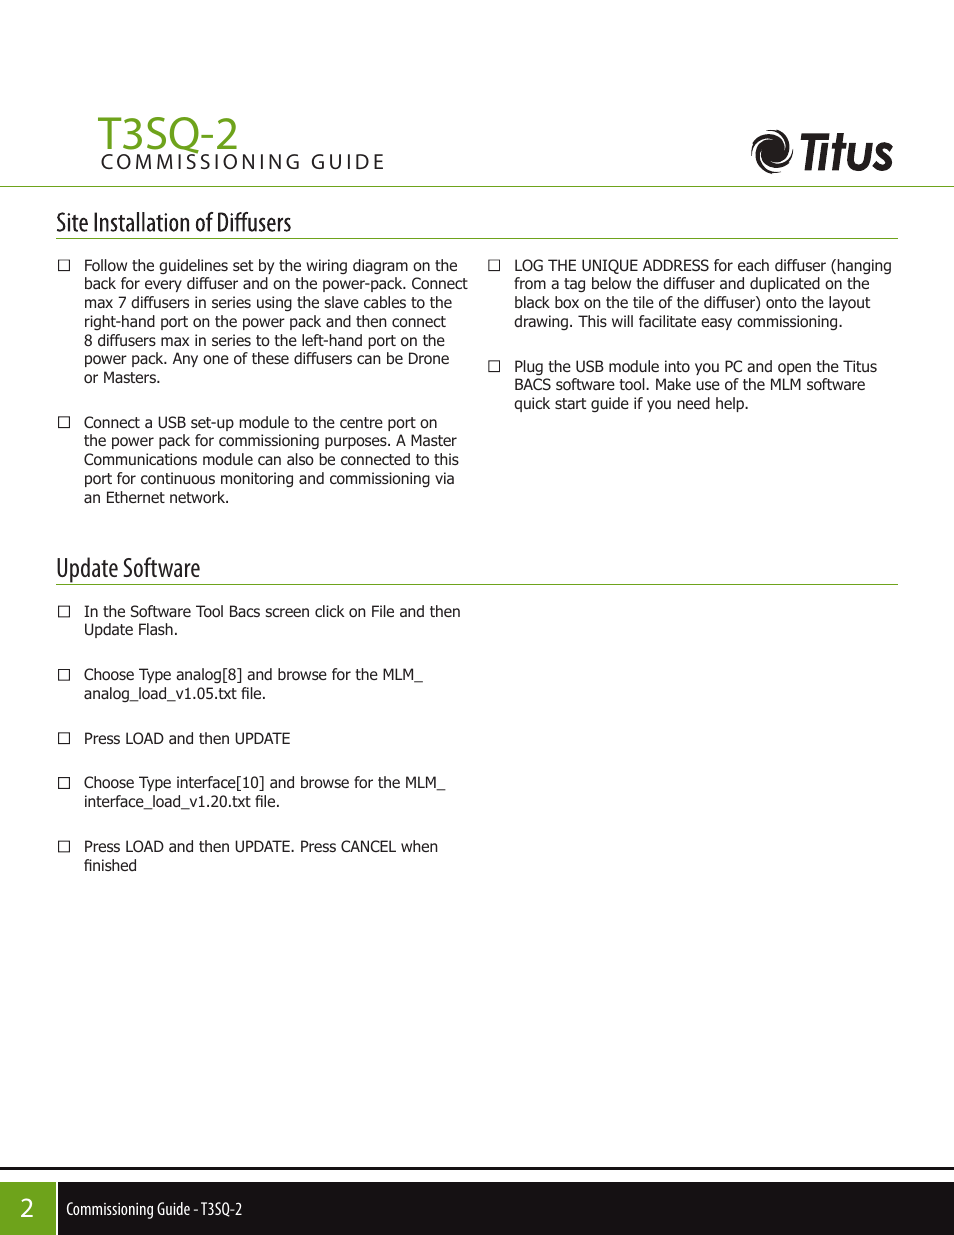 T3sq-2, Update software | Titus T3SQ-2 Commissioning Guide User Manual |  Page 2 / 4